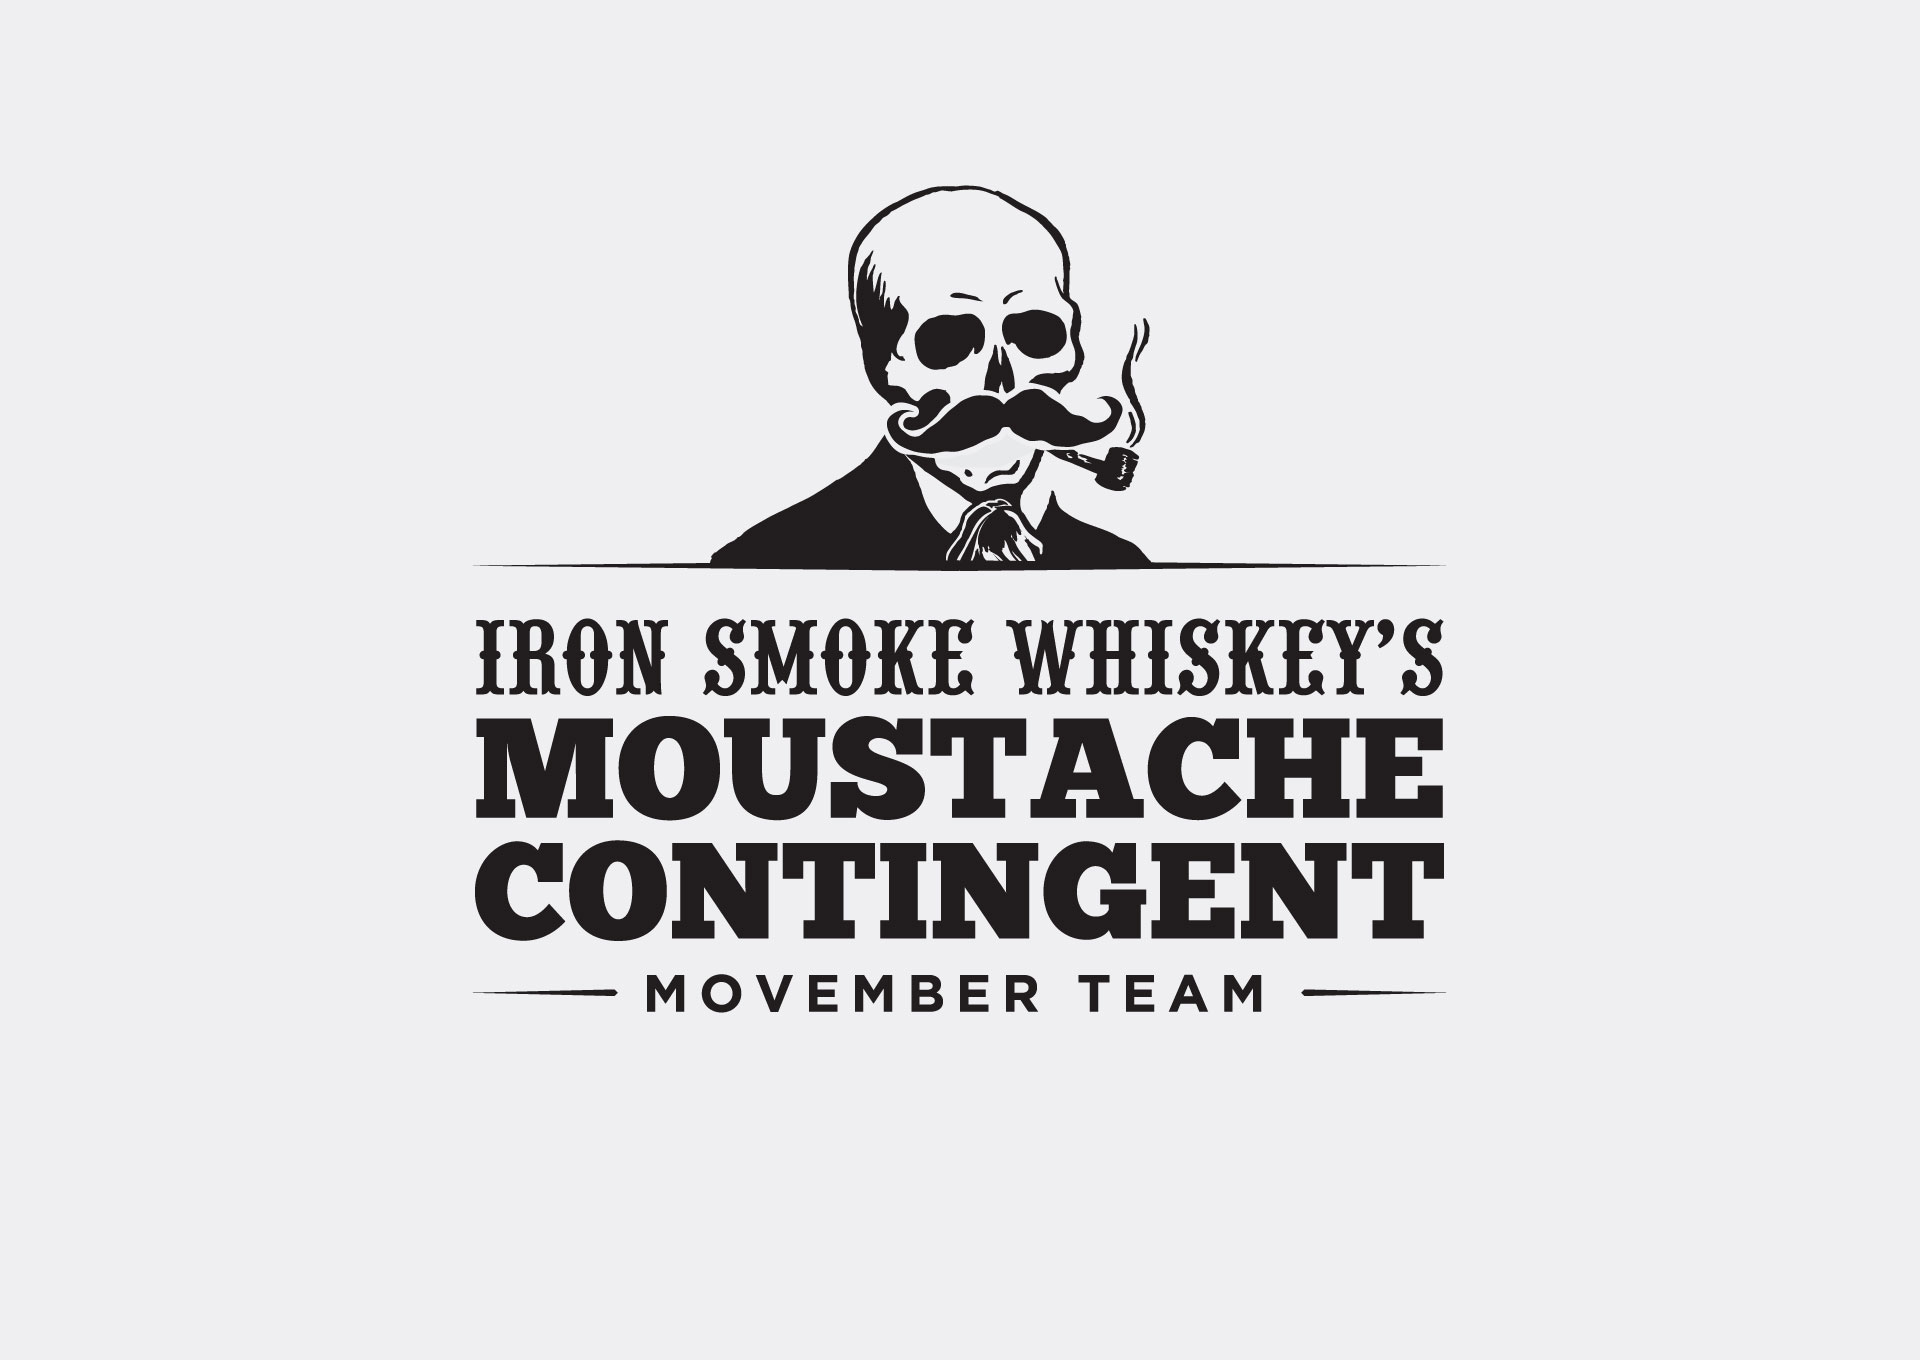 Iron Smoke Moustache Contingent Movember Team